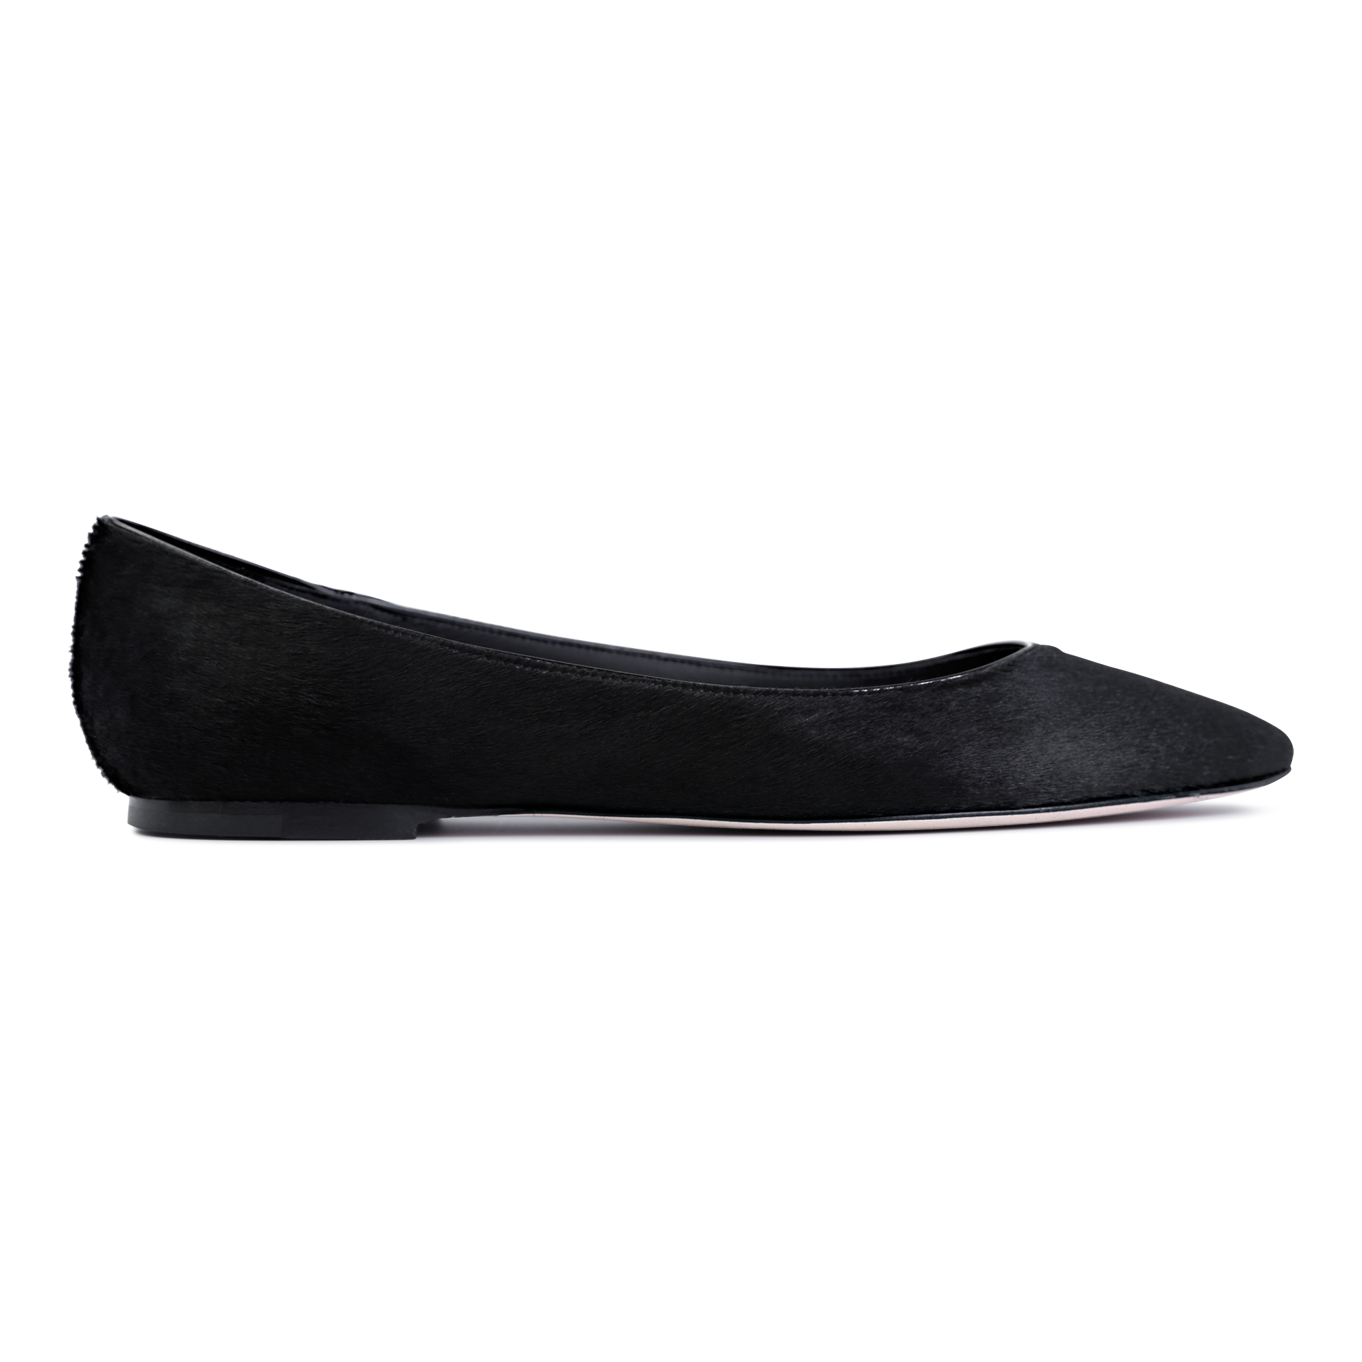 SIENA - Calf Hair Nero, VIAJIYU - Women's Hand Made Sustainable Luxury Shoes. Made in Italy. Made to Order.